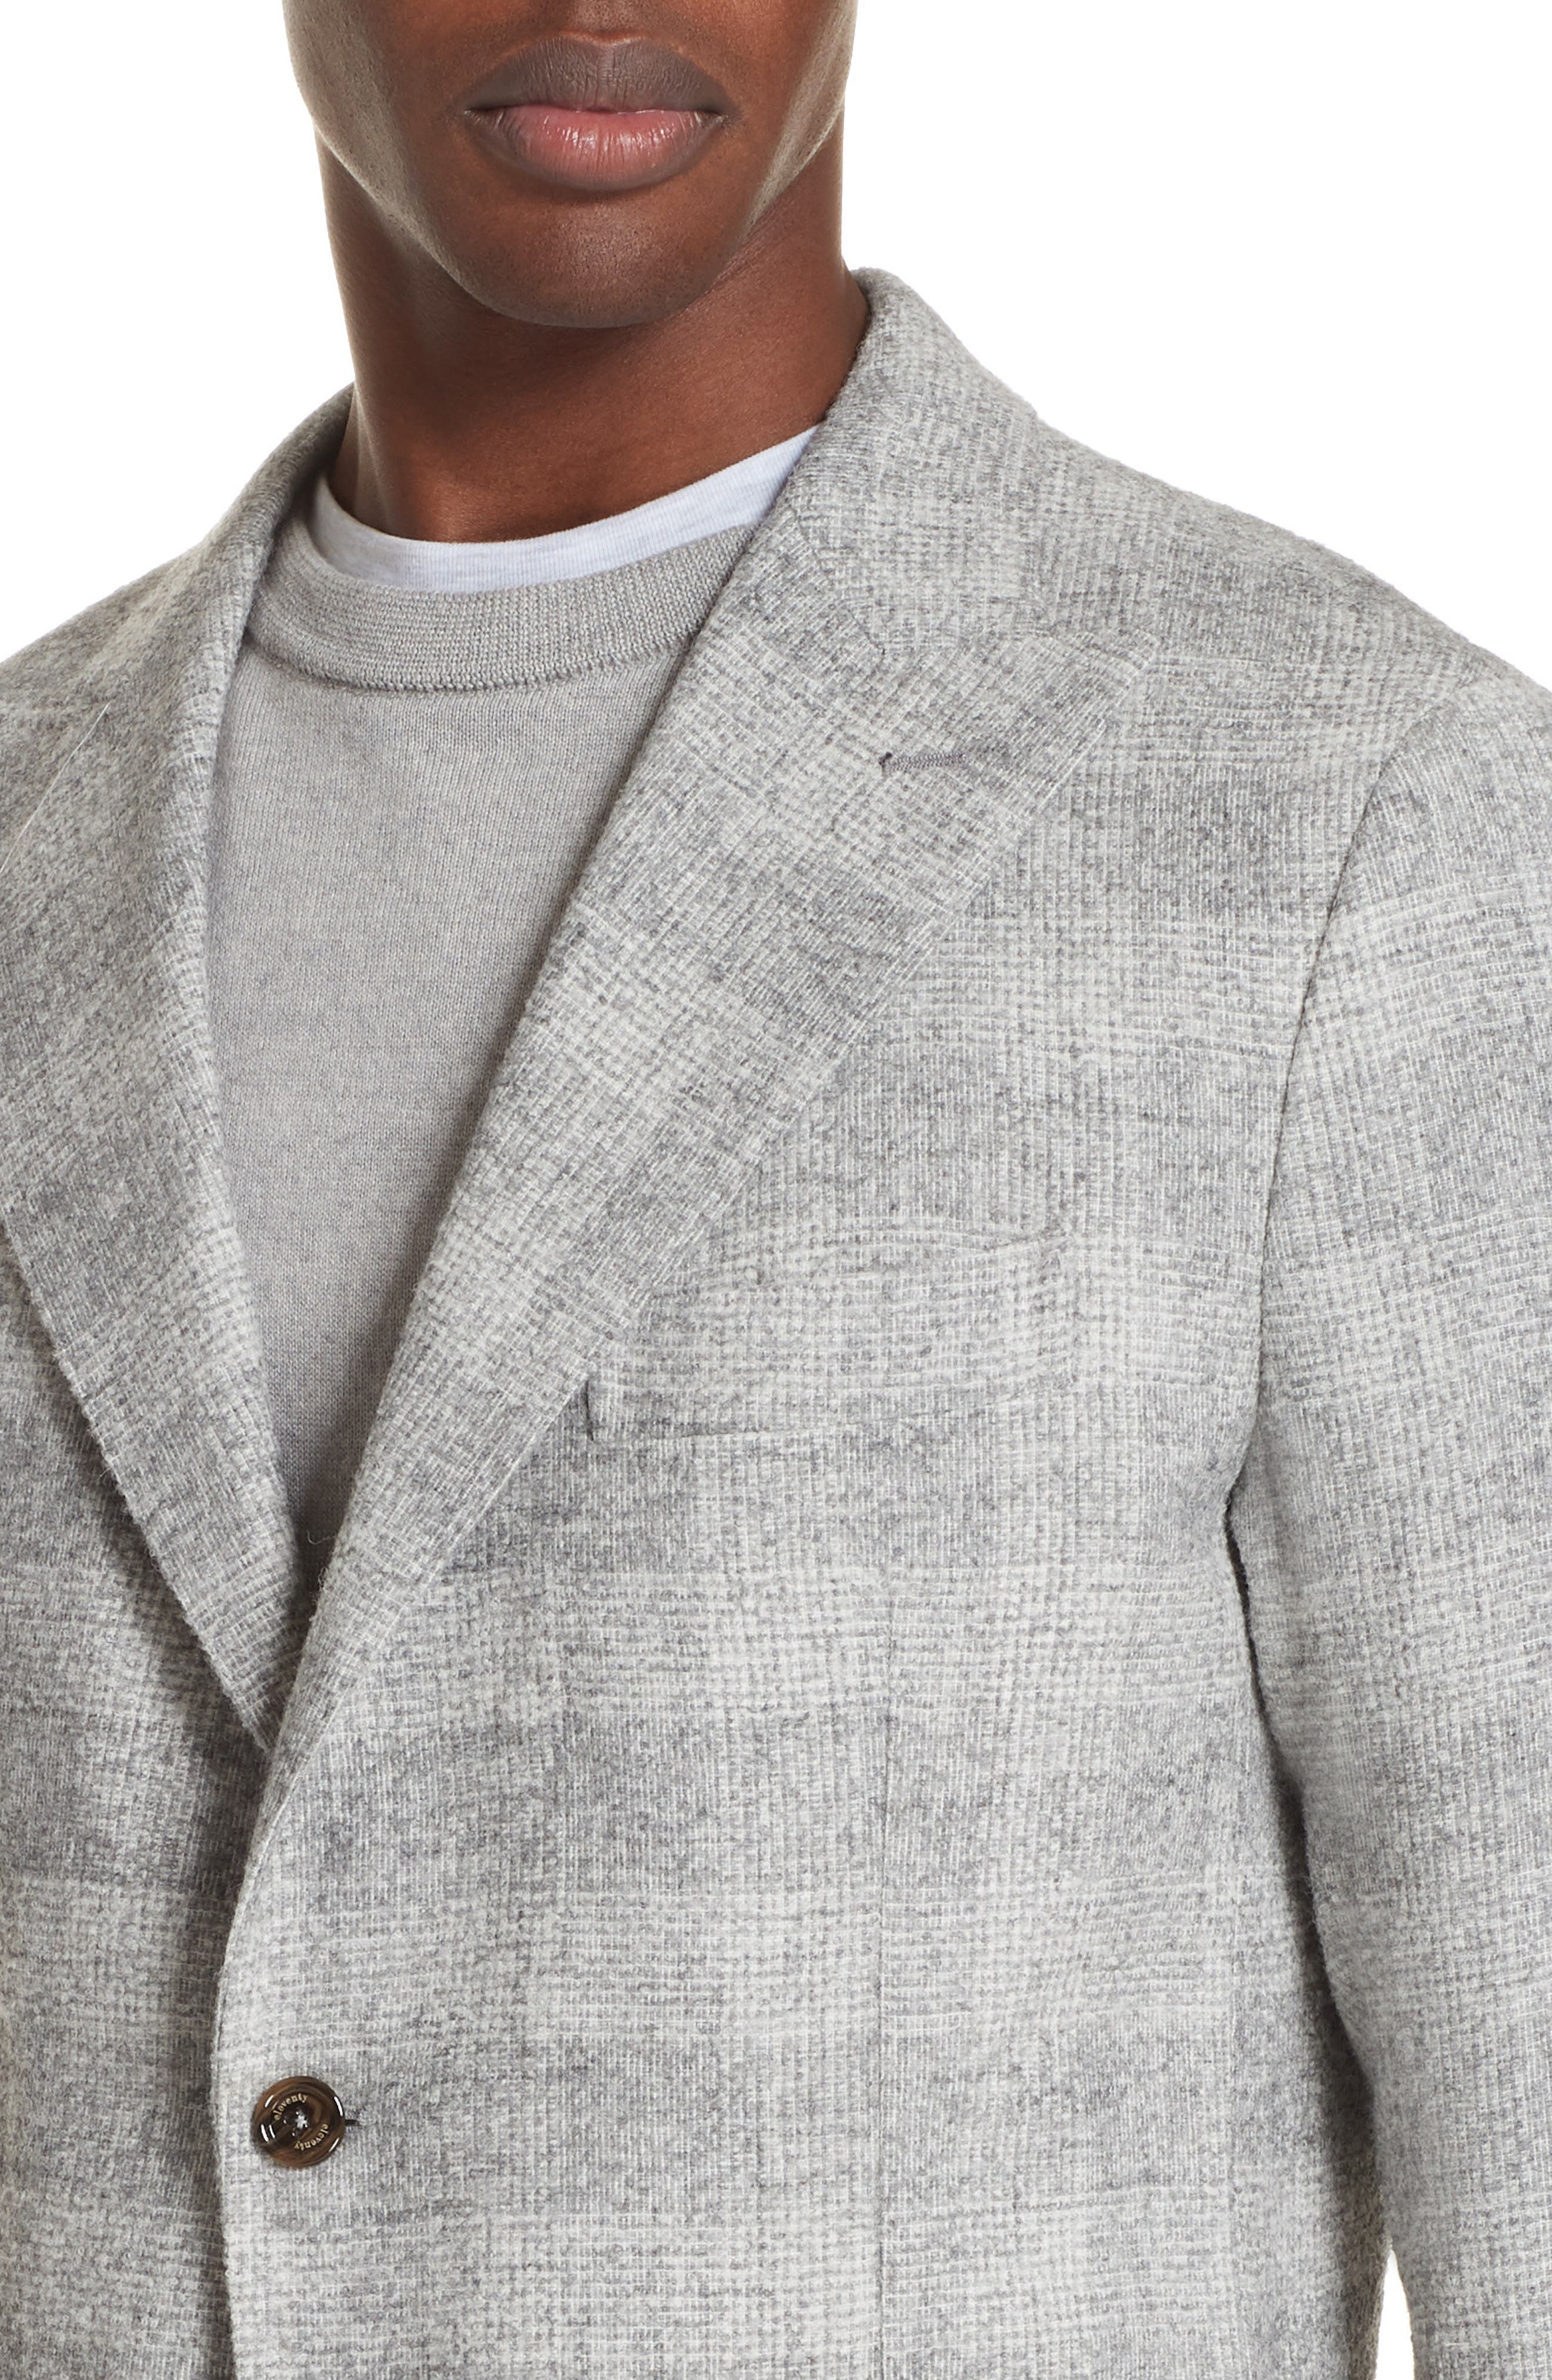 Trim Fit Houndstooth Alpaca Wool Blend Sport Coat,                             Alternate thumbnail 4, color,                             GREY